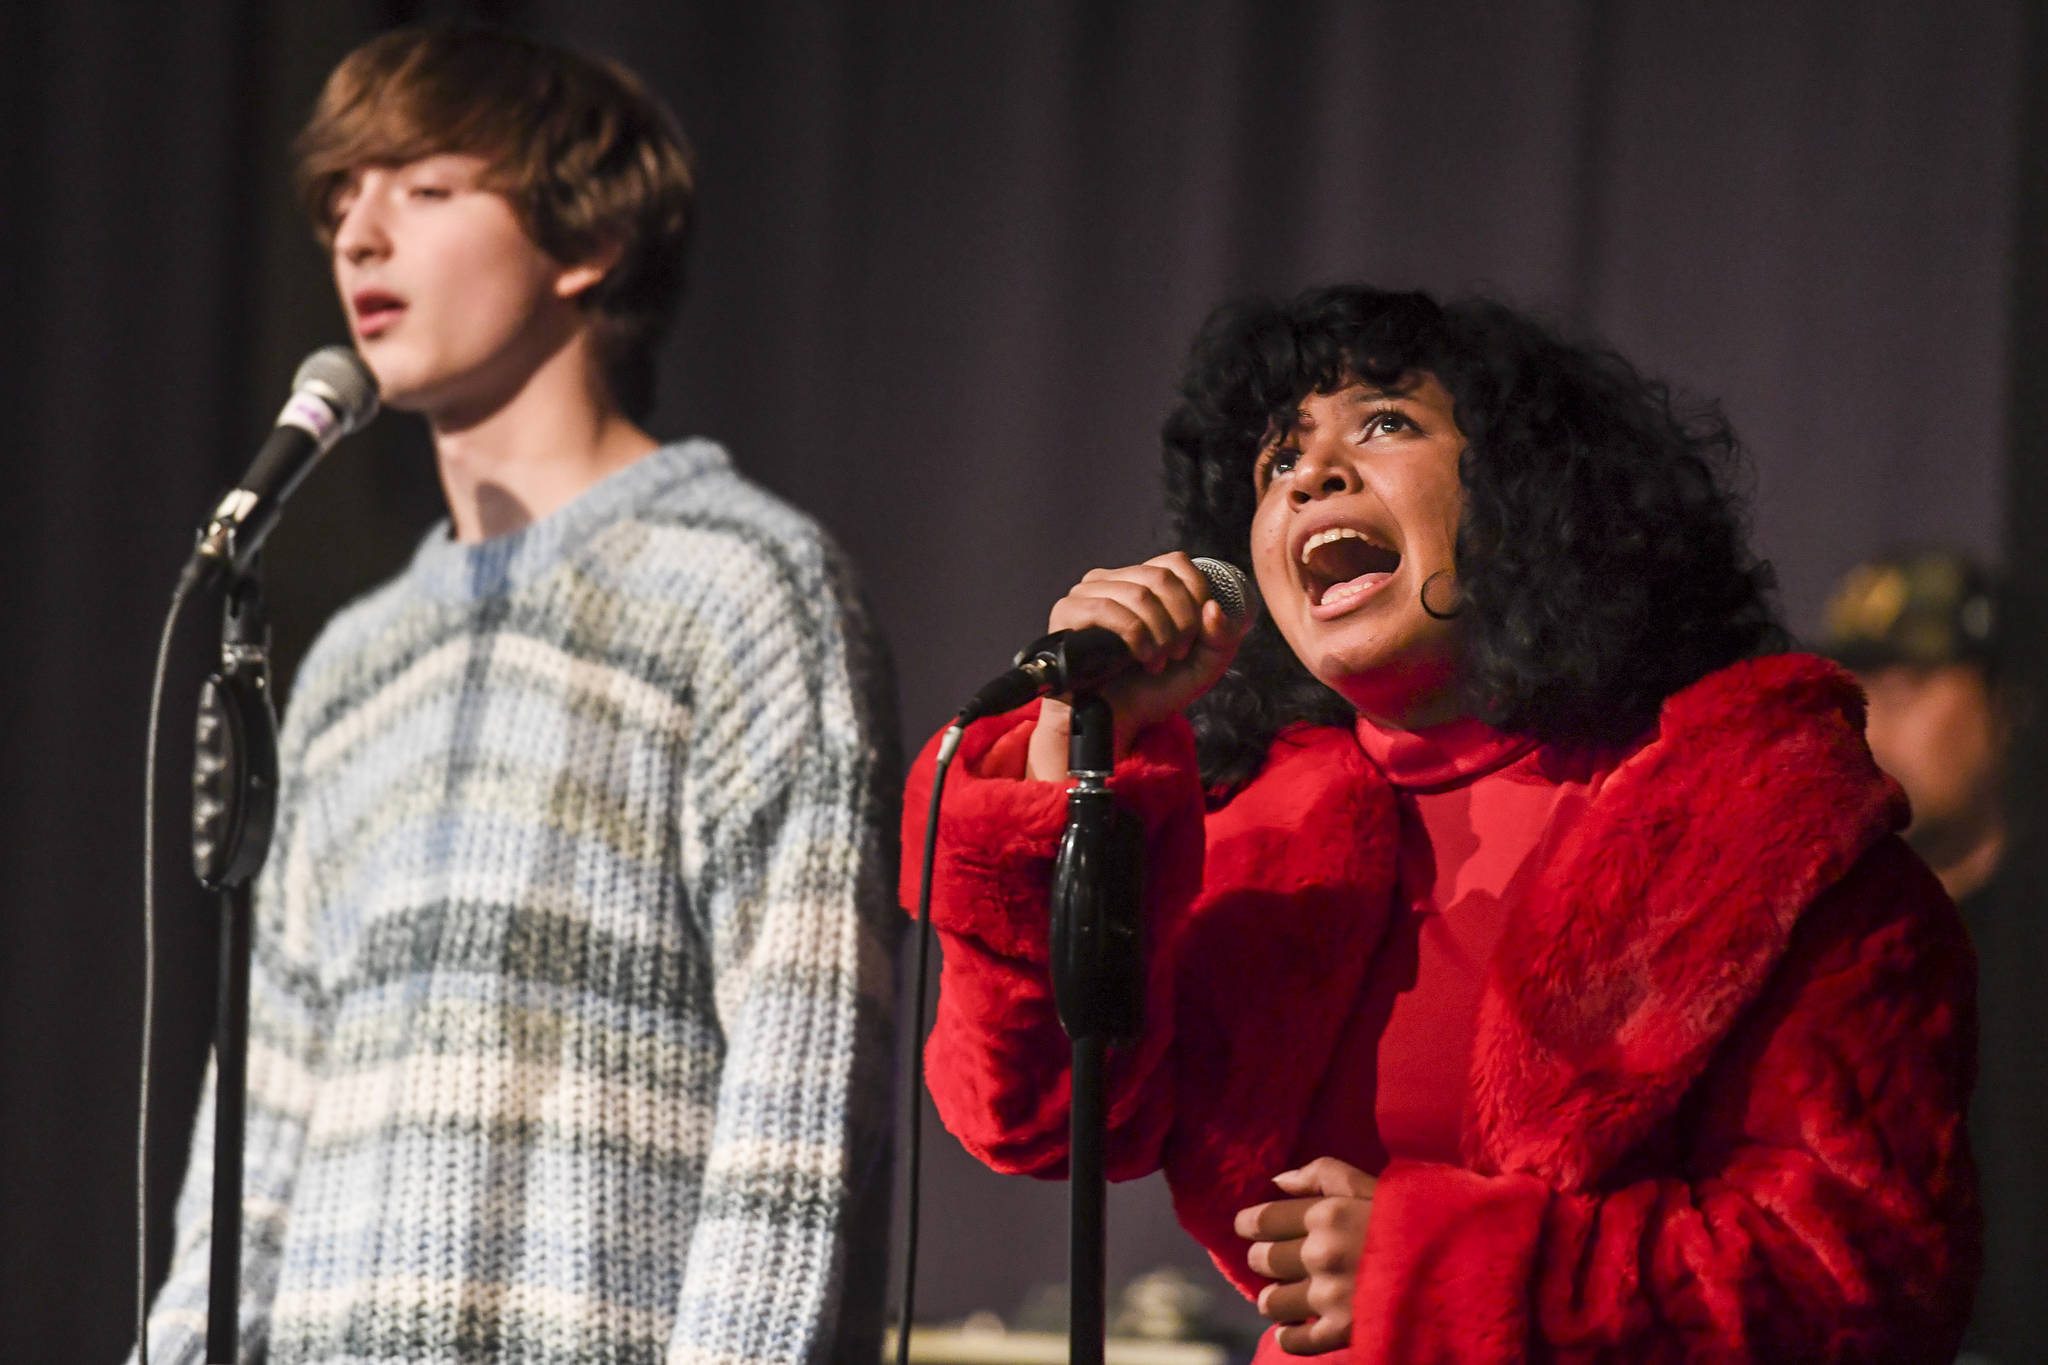 Zansler Kotlarov and Eliza Valentine perform during the Killah Priest of Wu Tang Southeast Tour at the Juneau Arts & Culture Center on Friday, Dec. 20, 2019. (Michael Penn | Juneau Empire)